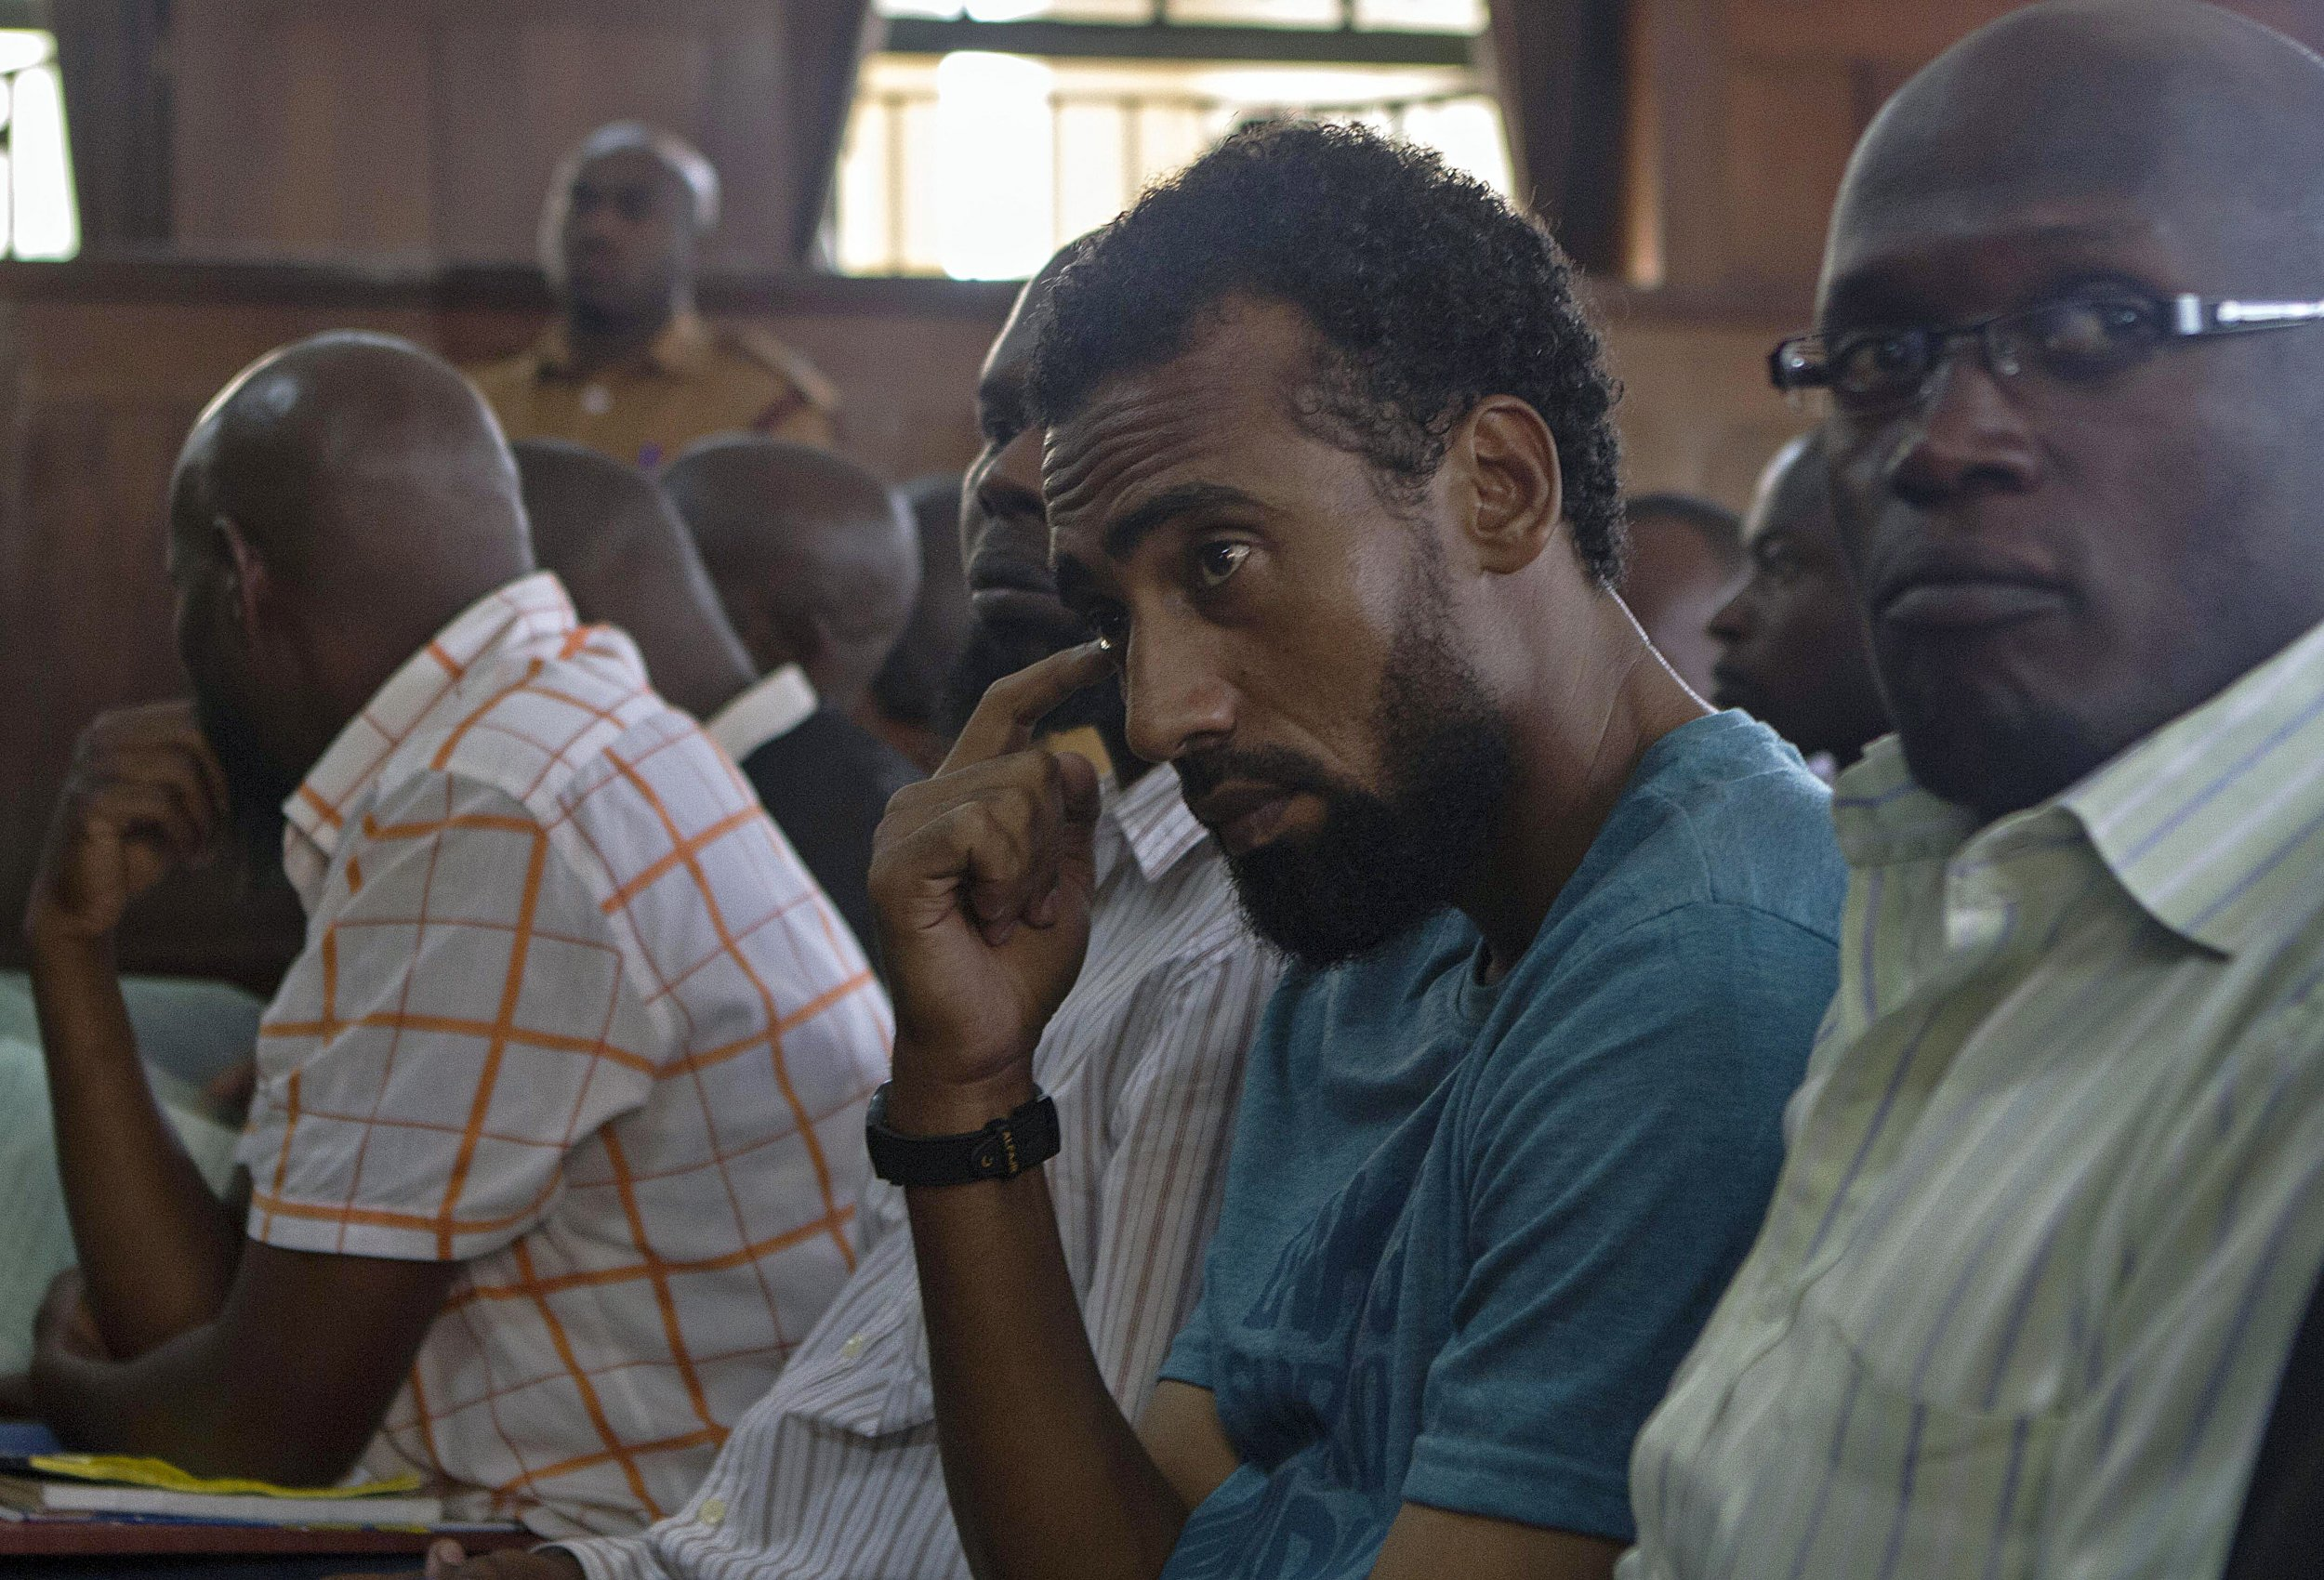 Uganda Al-Shabab bombing suspects.